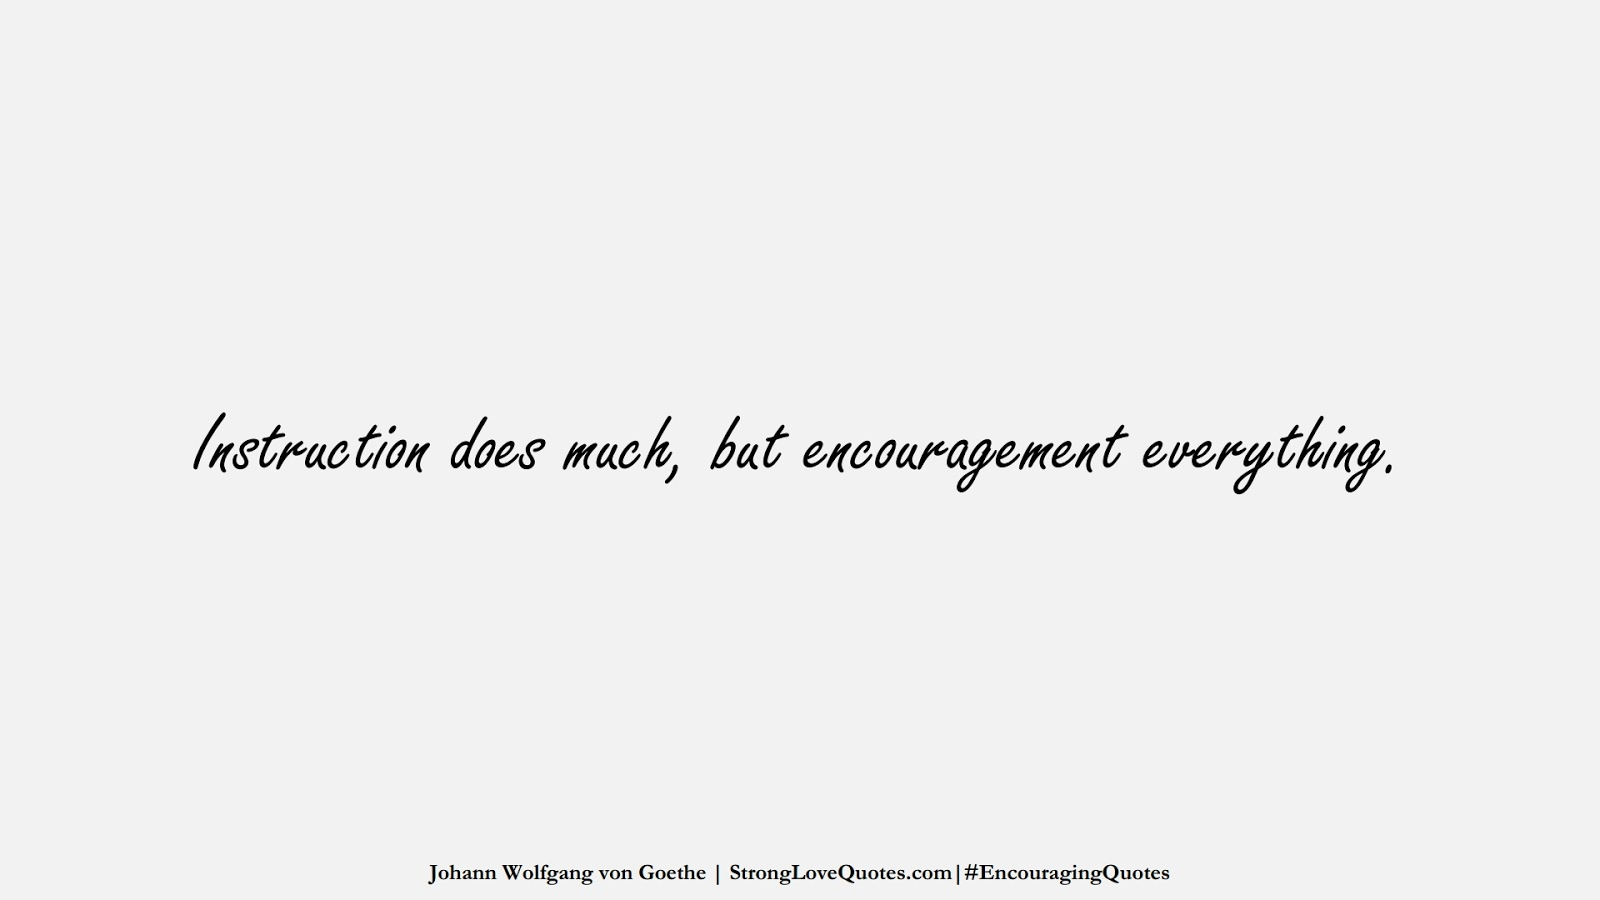 Instruction does much, but encouragement everything. (Johann Wolfgang von Goethe);  #EncouragingQuotes